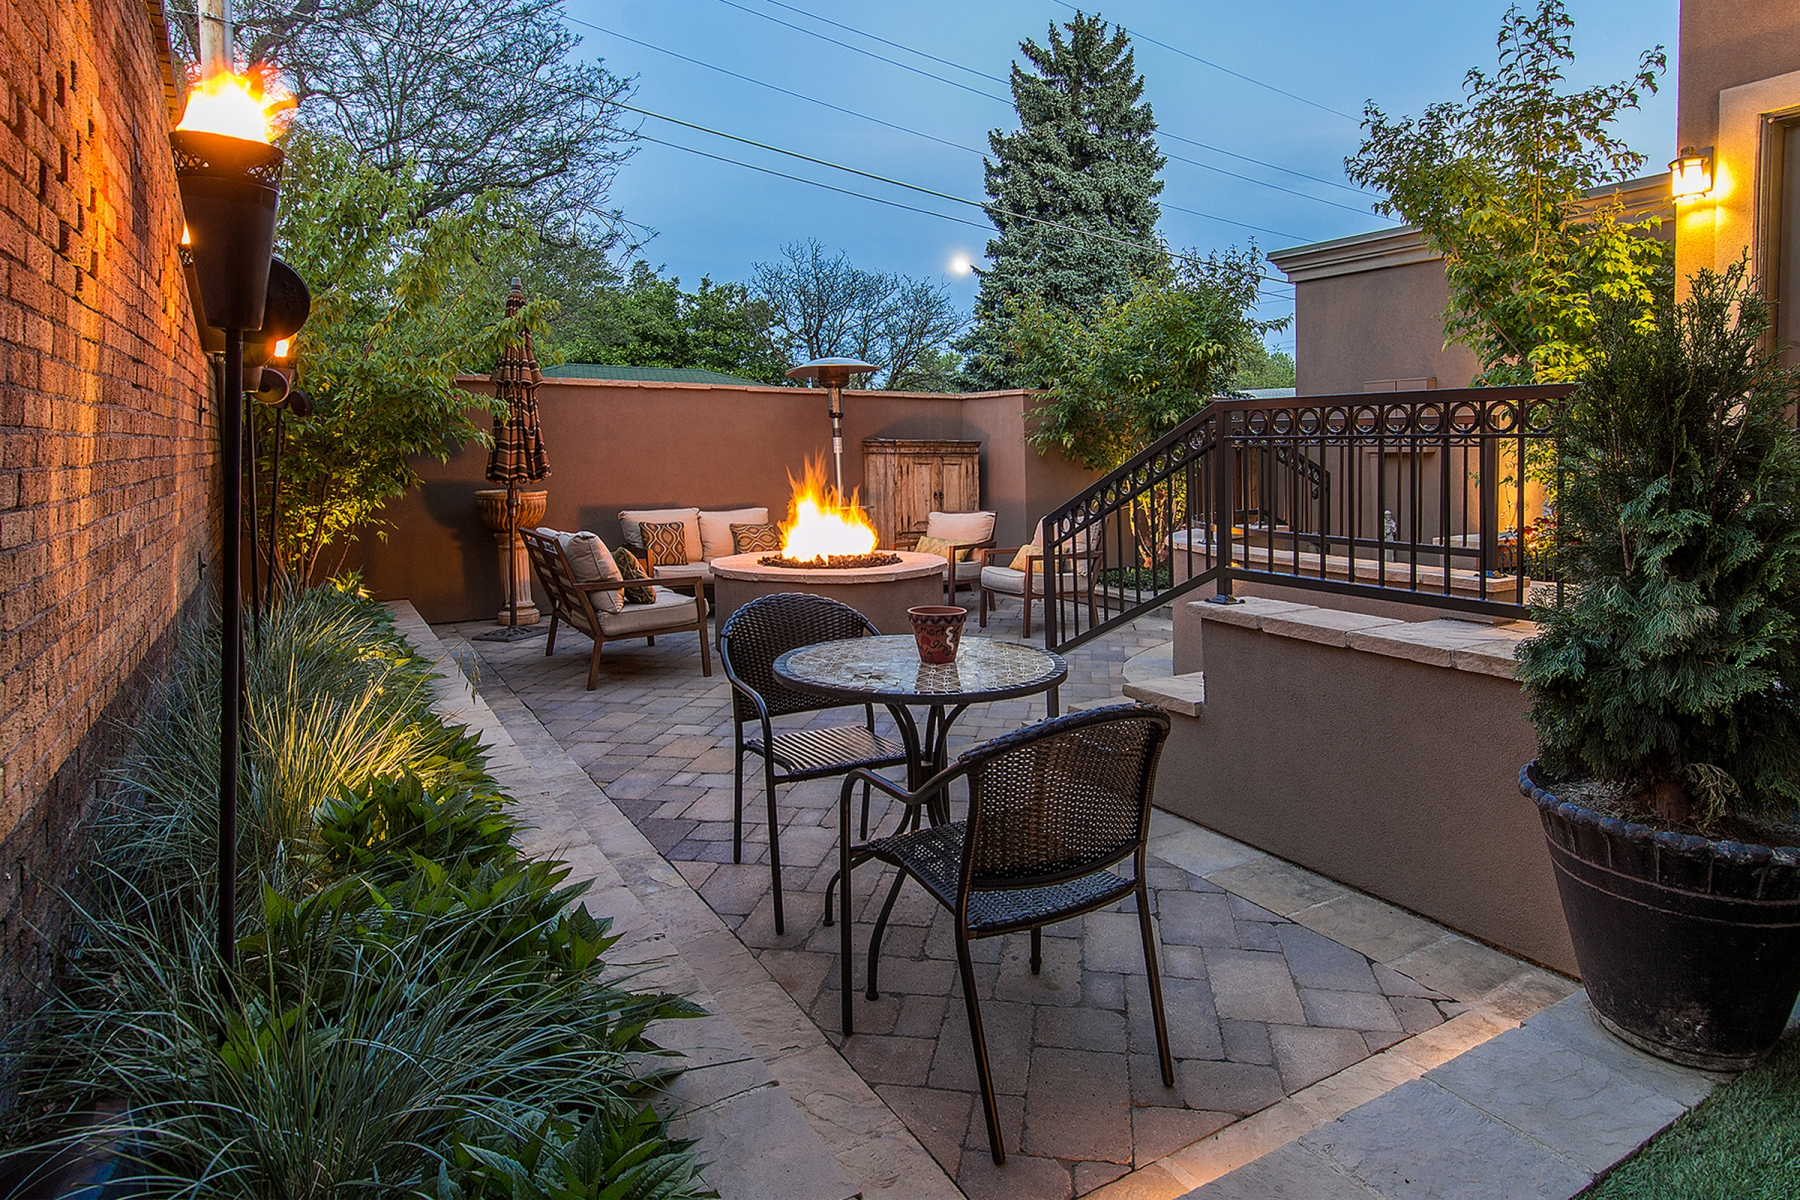 Single Family Home for Sale at Sophisticated and Elegant Oasis in the City 800 York Street Denver, Colorado 80206 United States